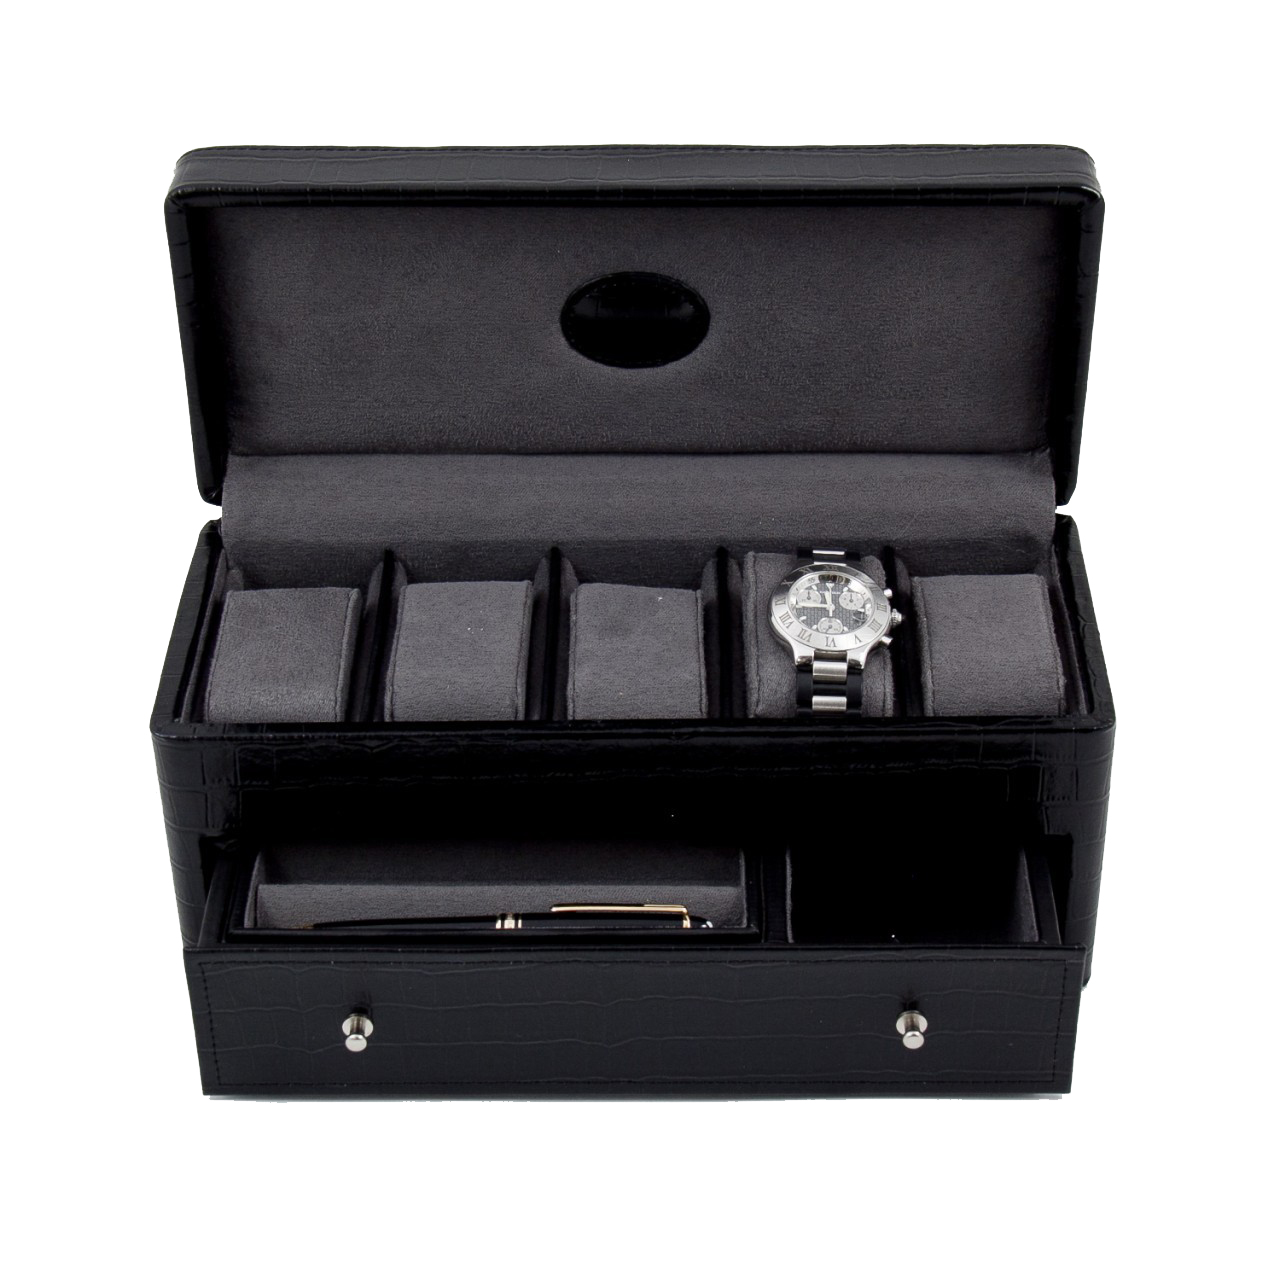 Black Croco Leather 5 Watch Box w/ Drawer for Pens and Accessories